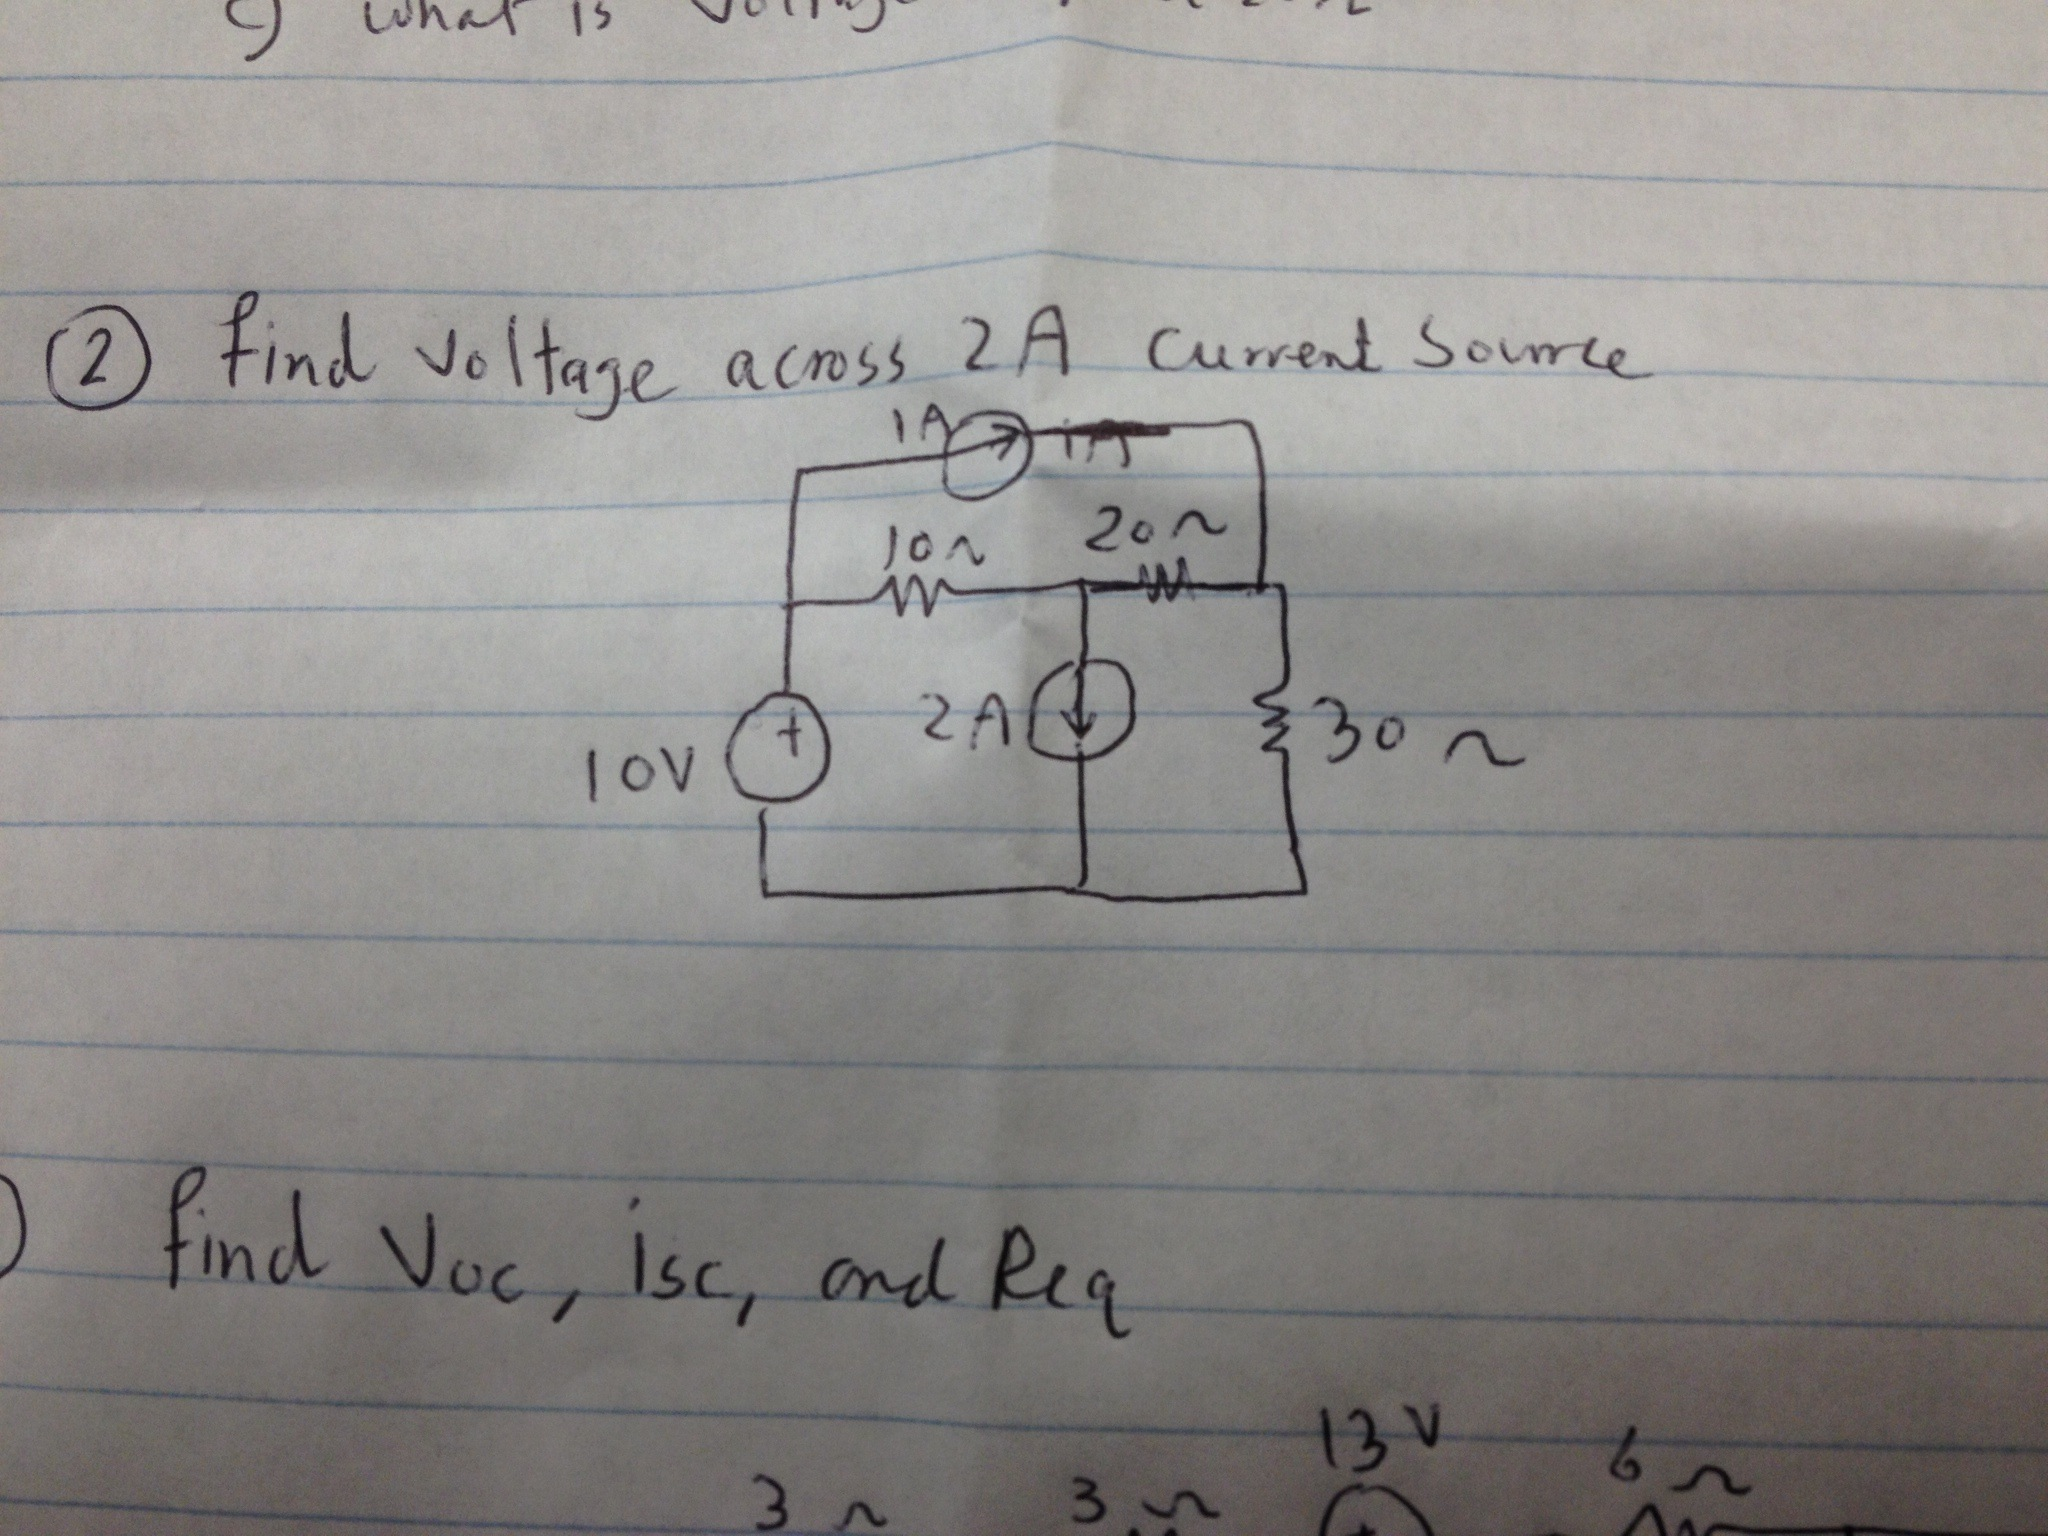 Find Voltage across ZA current source